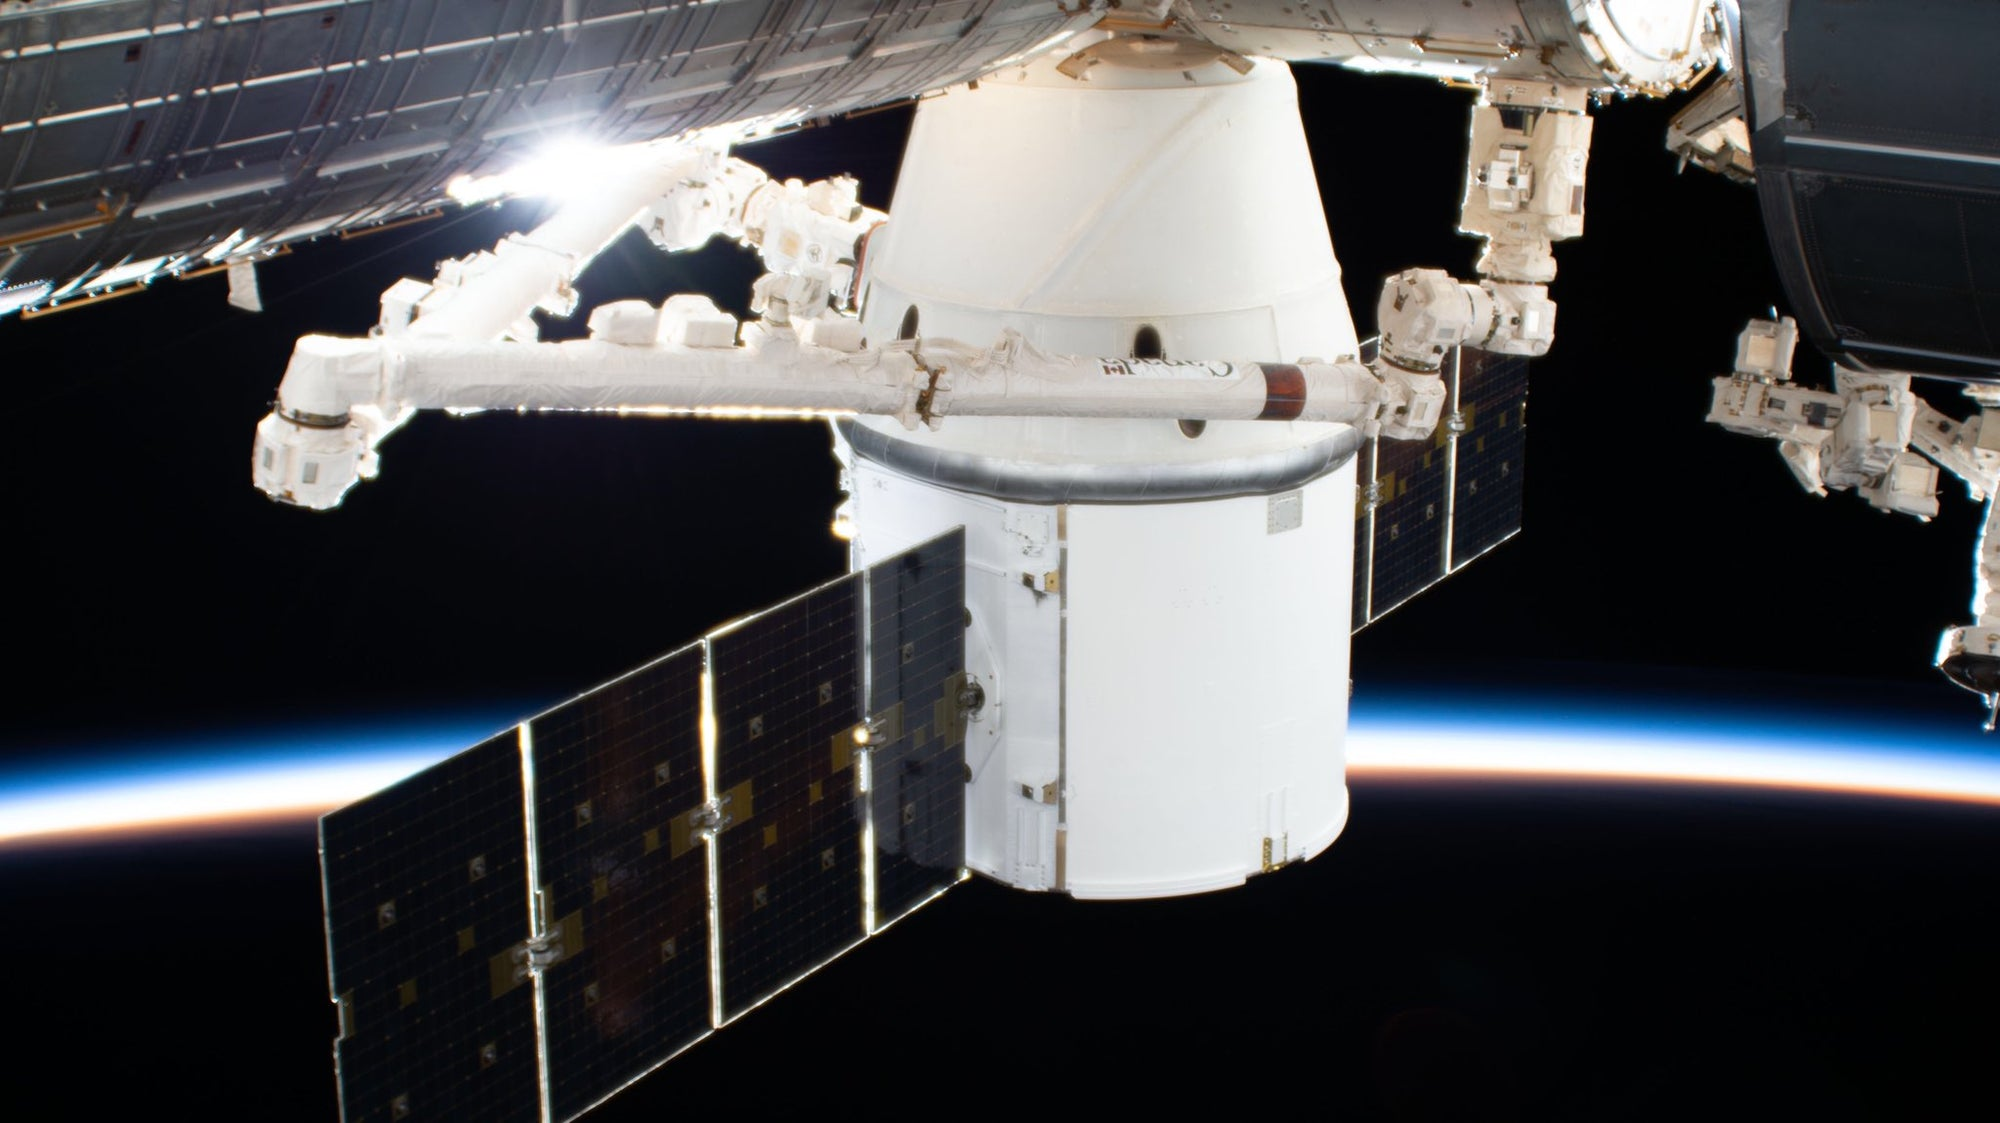 SpaceX's Dragon spacecraft will depart the Space Station tomorrow morning. Watch It Live!